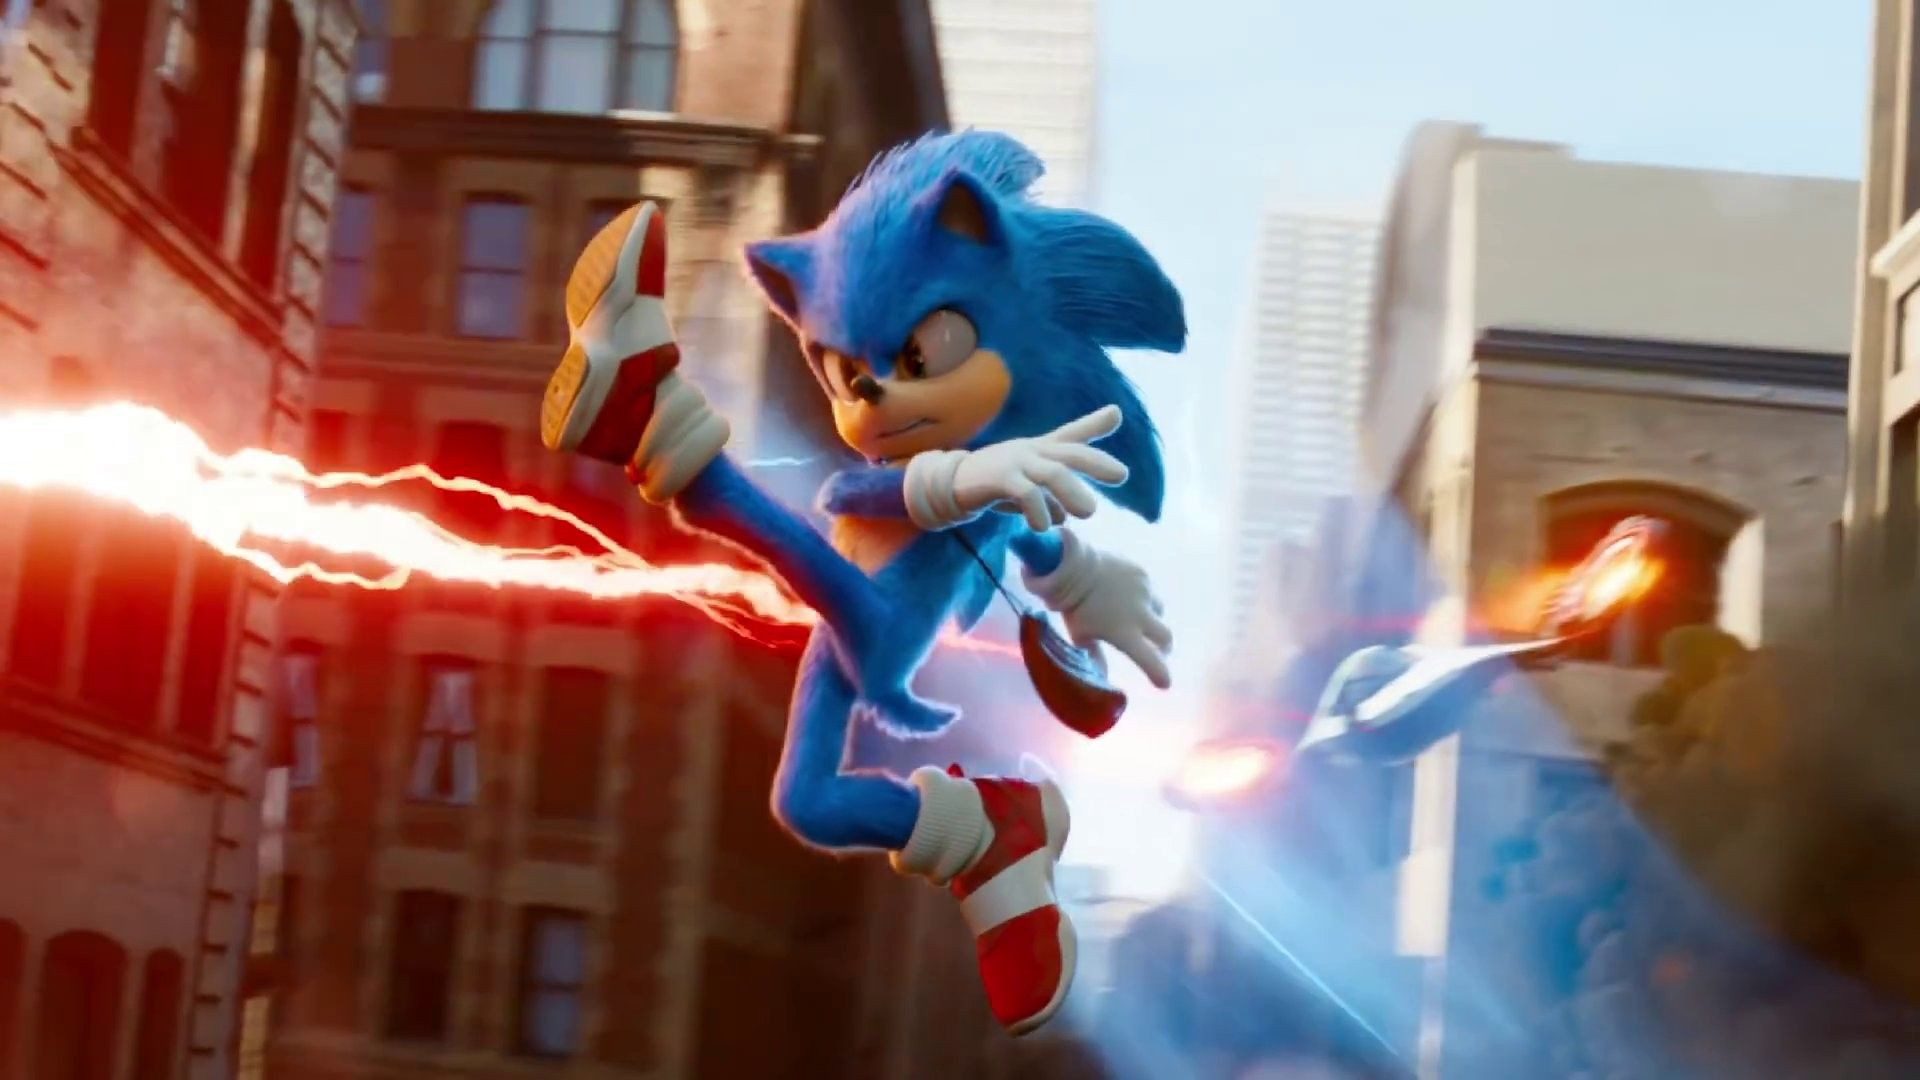 Pin By Tearra On Future 2021 In 2020 With Images Sonic The Hedgehog Sonic The Movie Hedgehog Movie